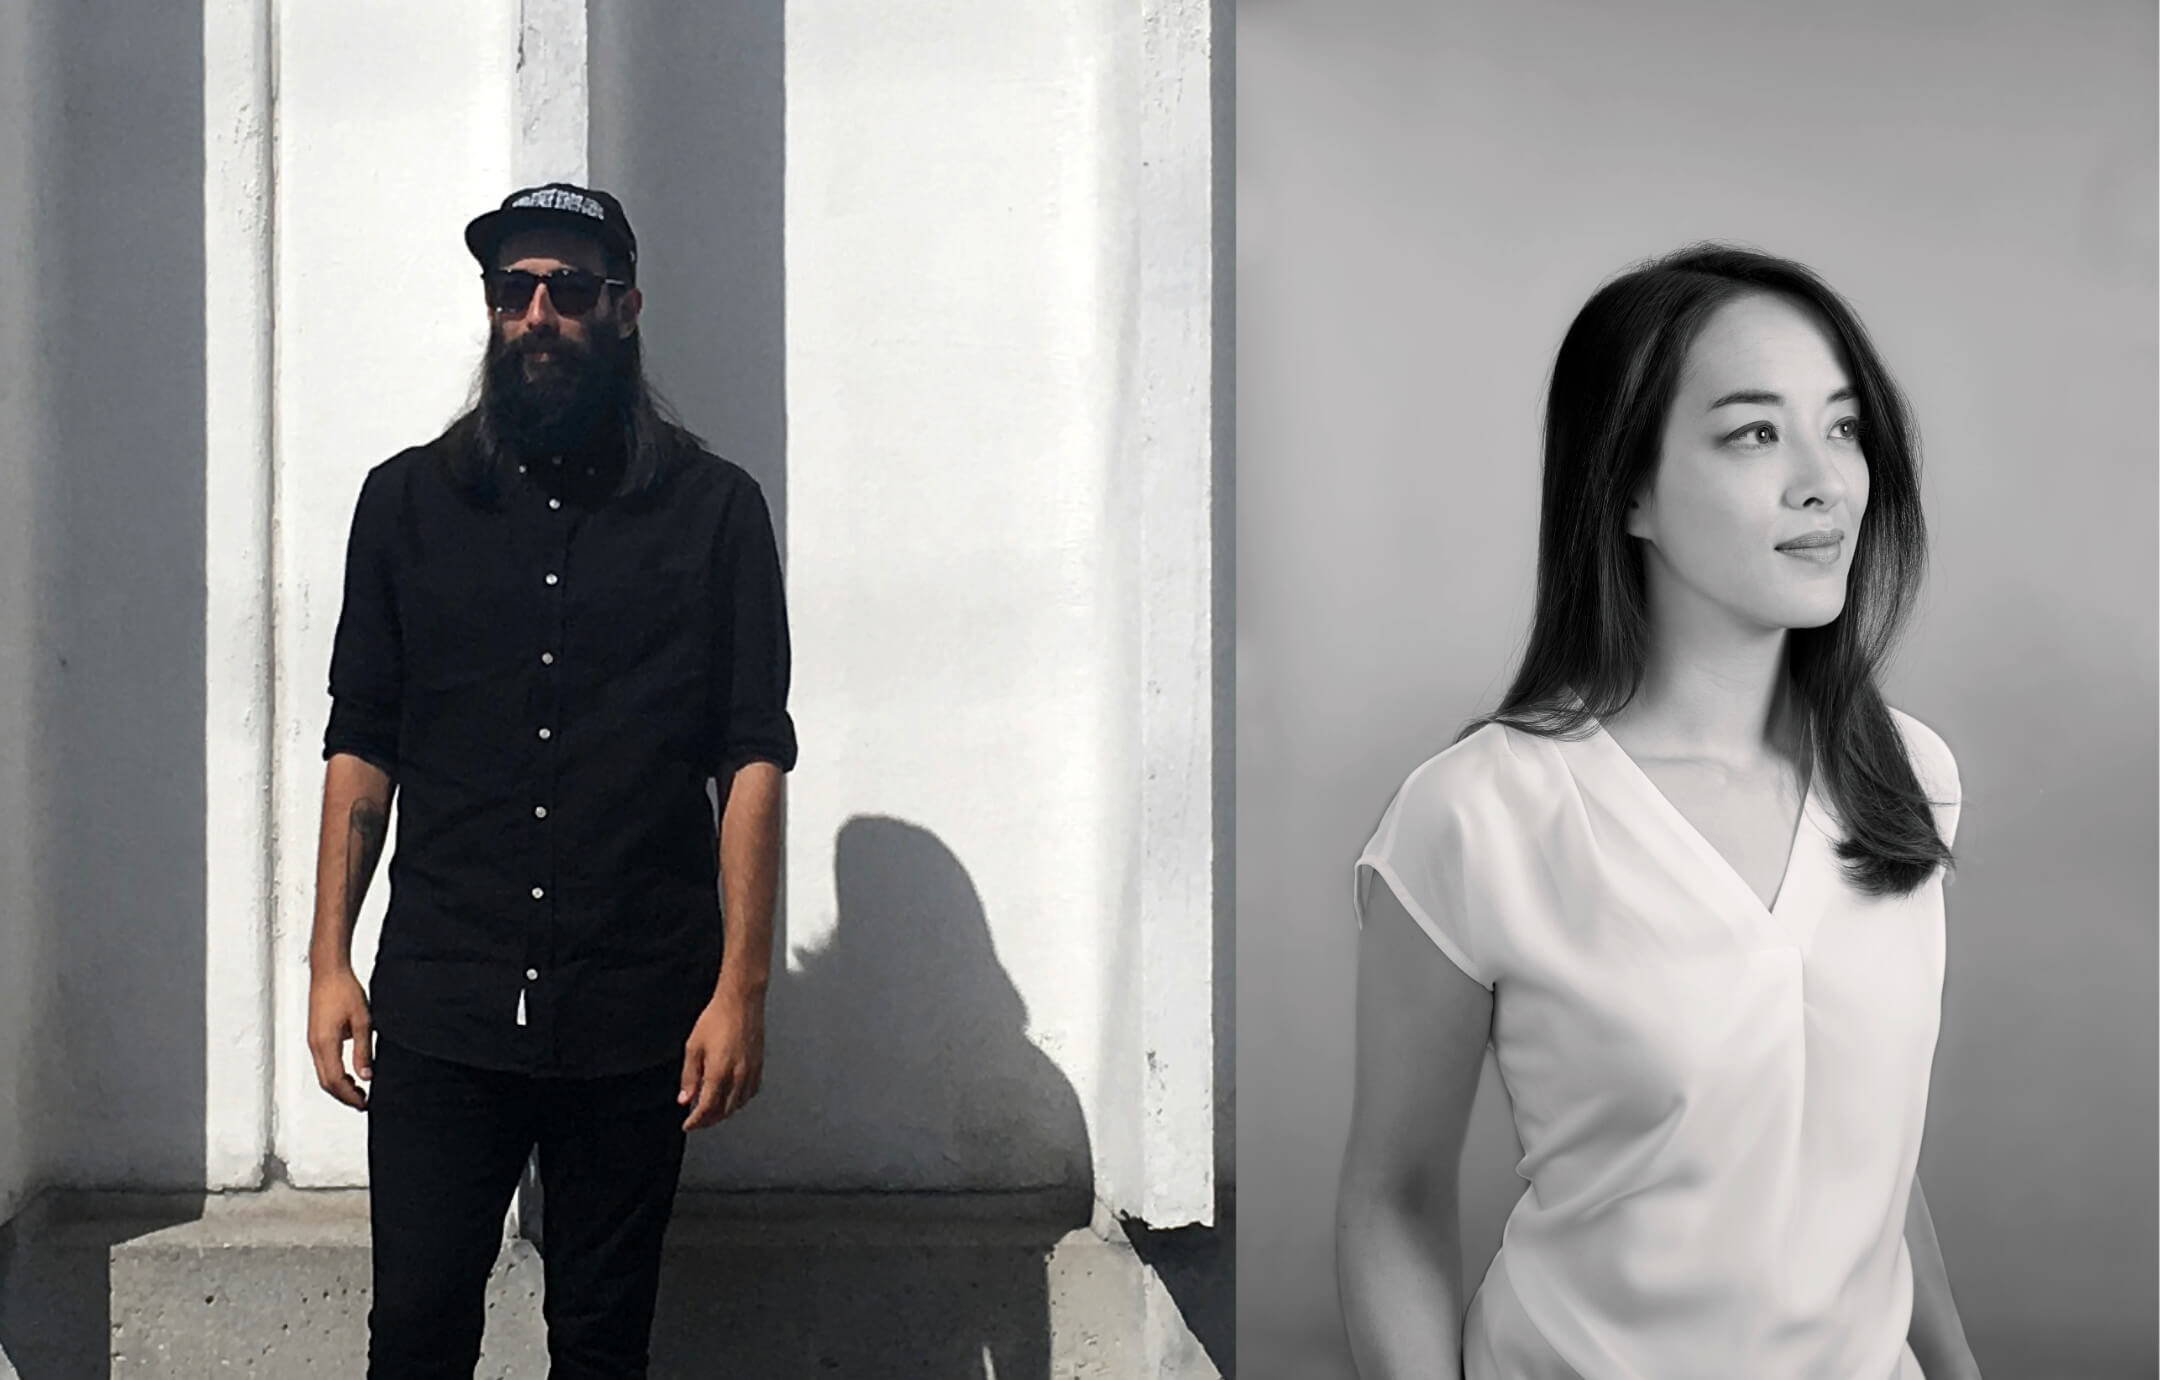 Portraits of Étienne Aubert Bonn and My-Lan Thuong